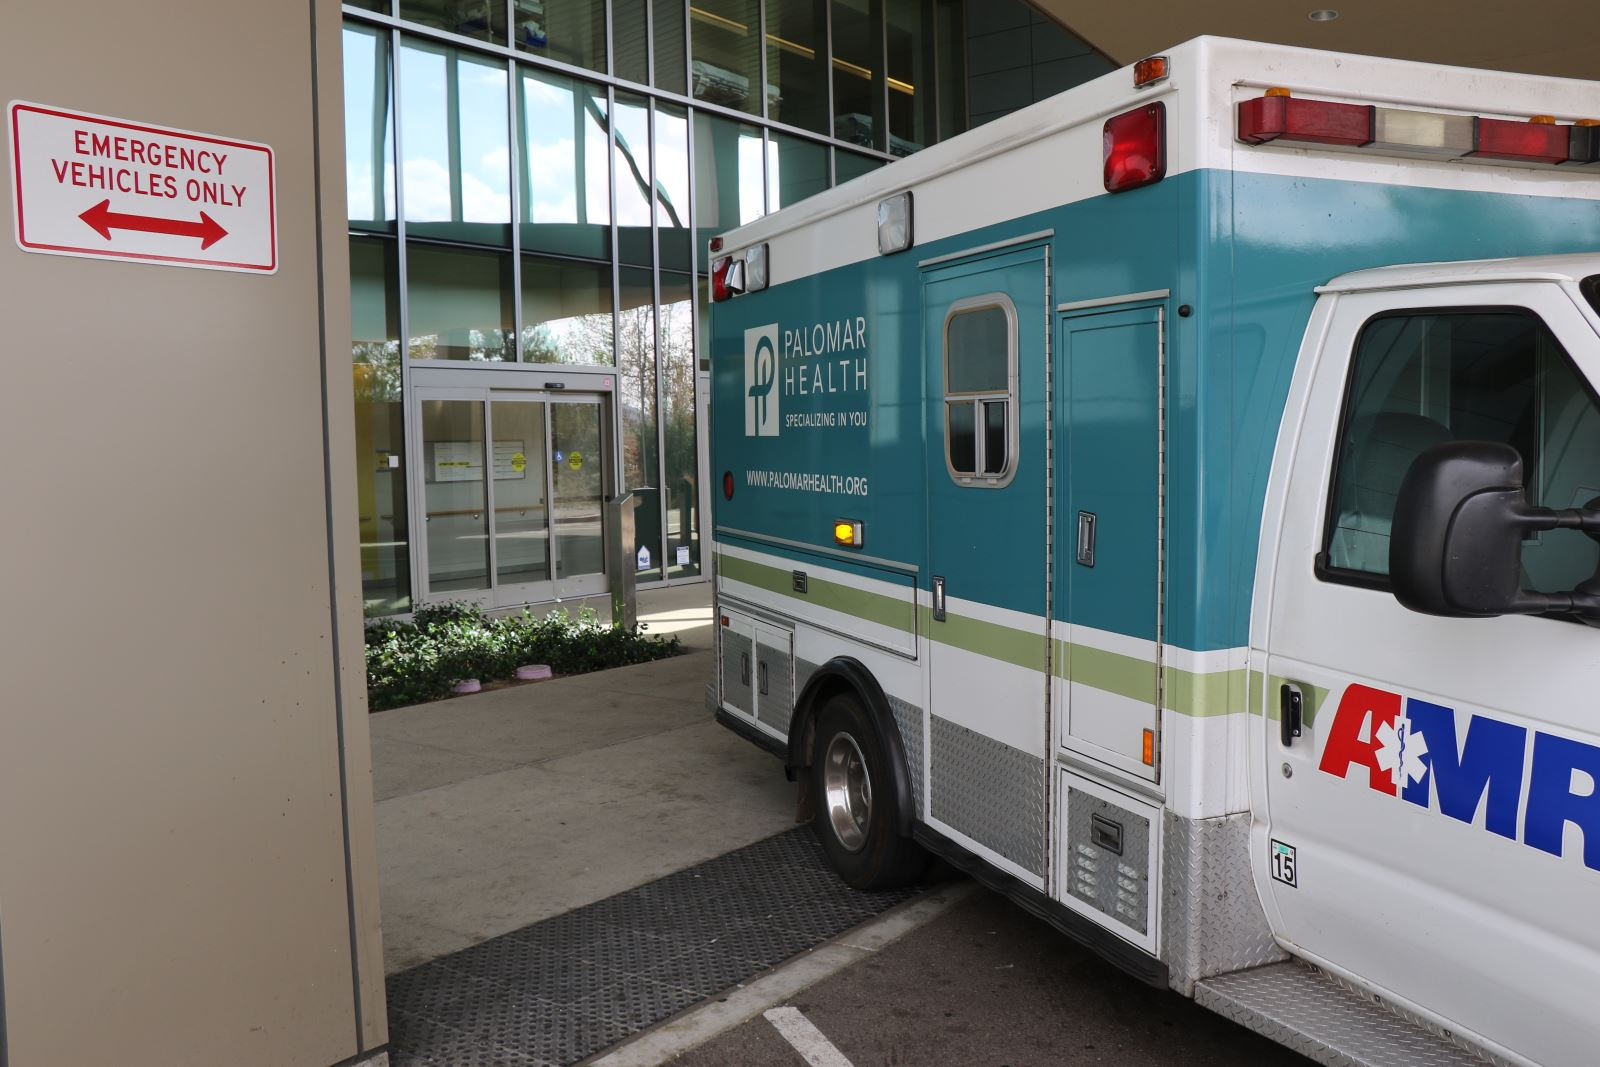 Image of Ambulance at a Emergency Department